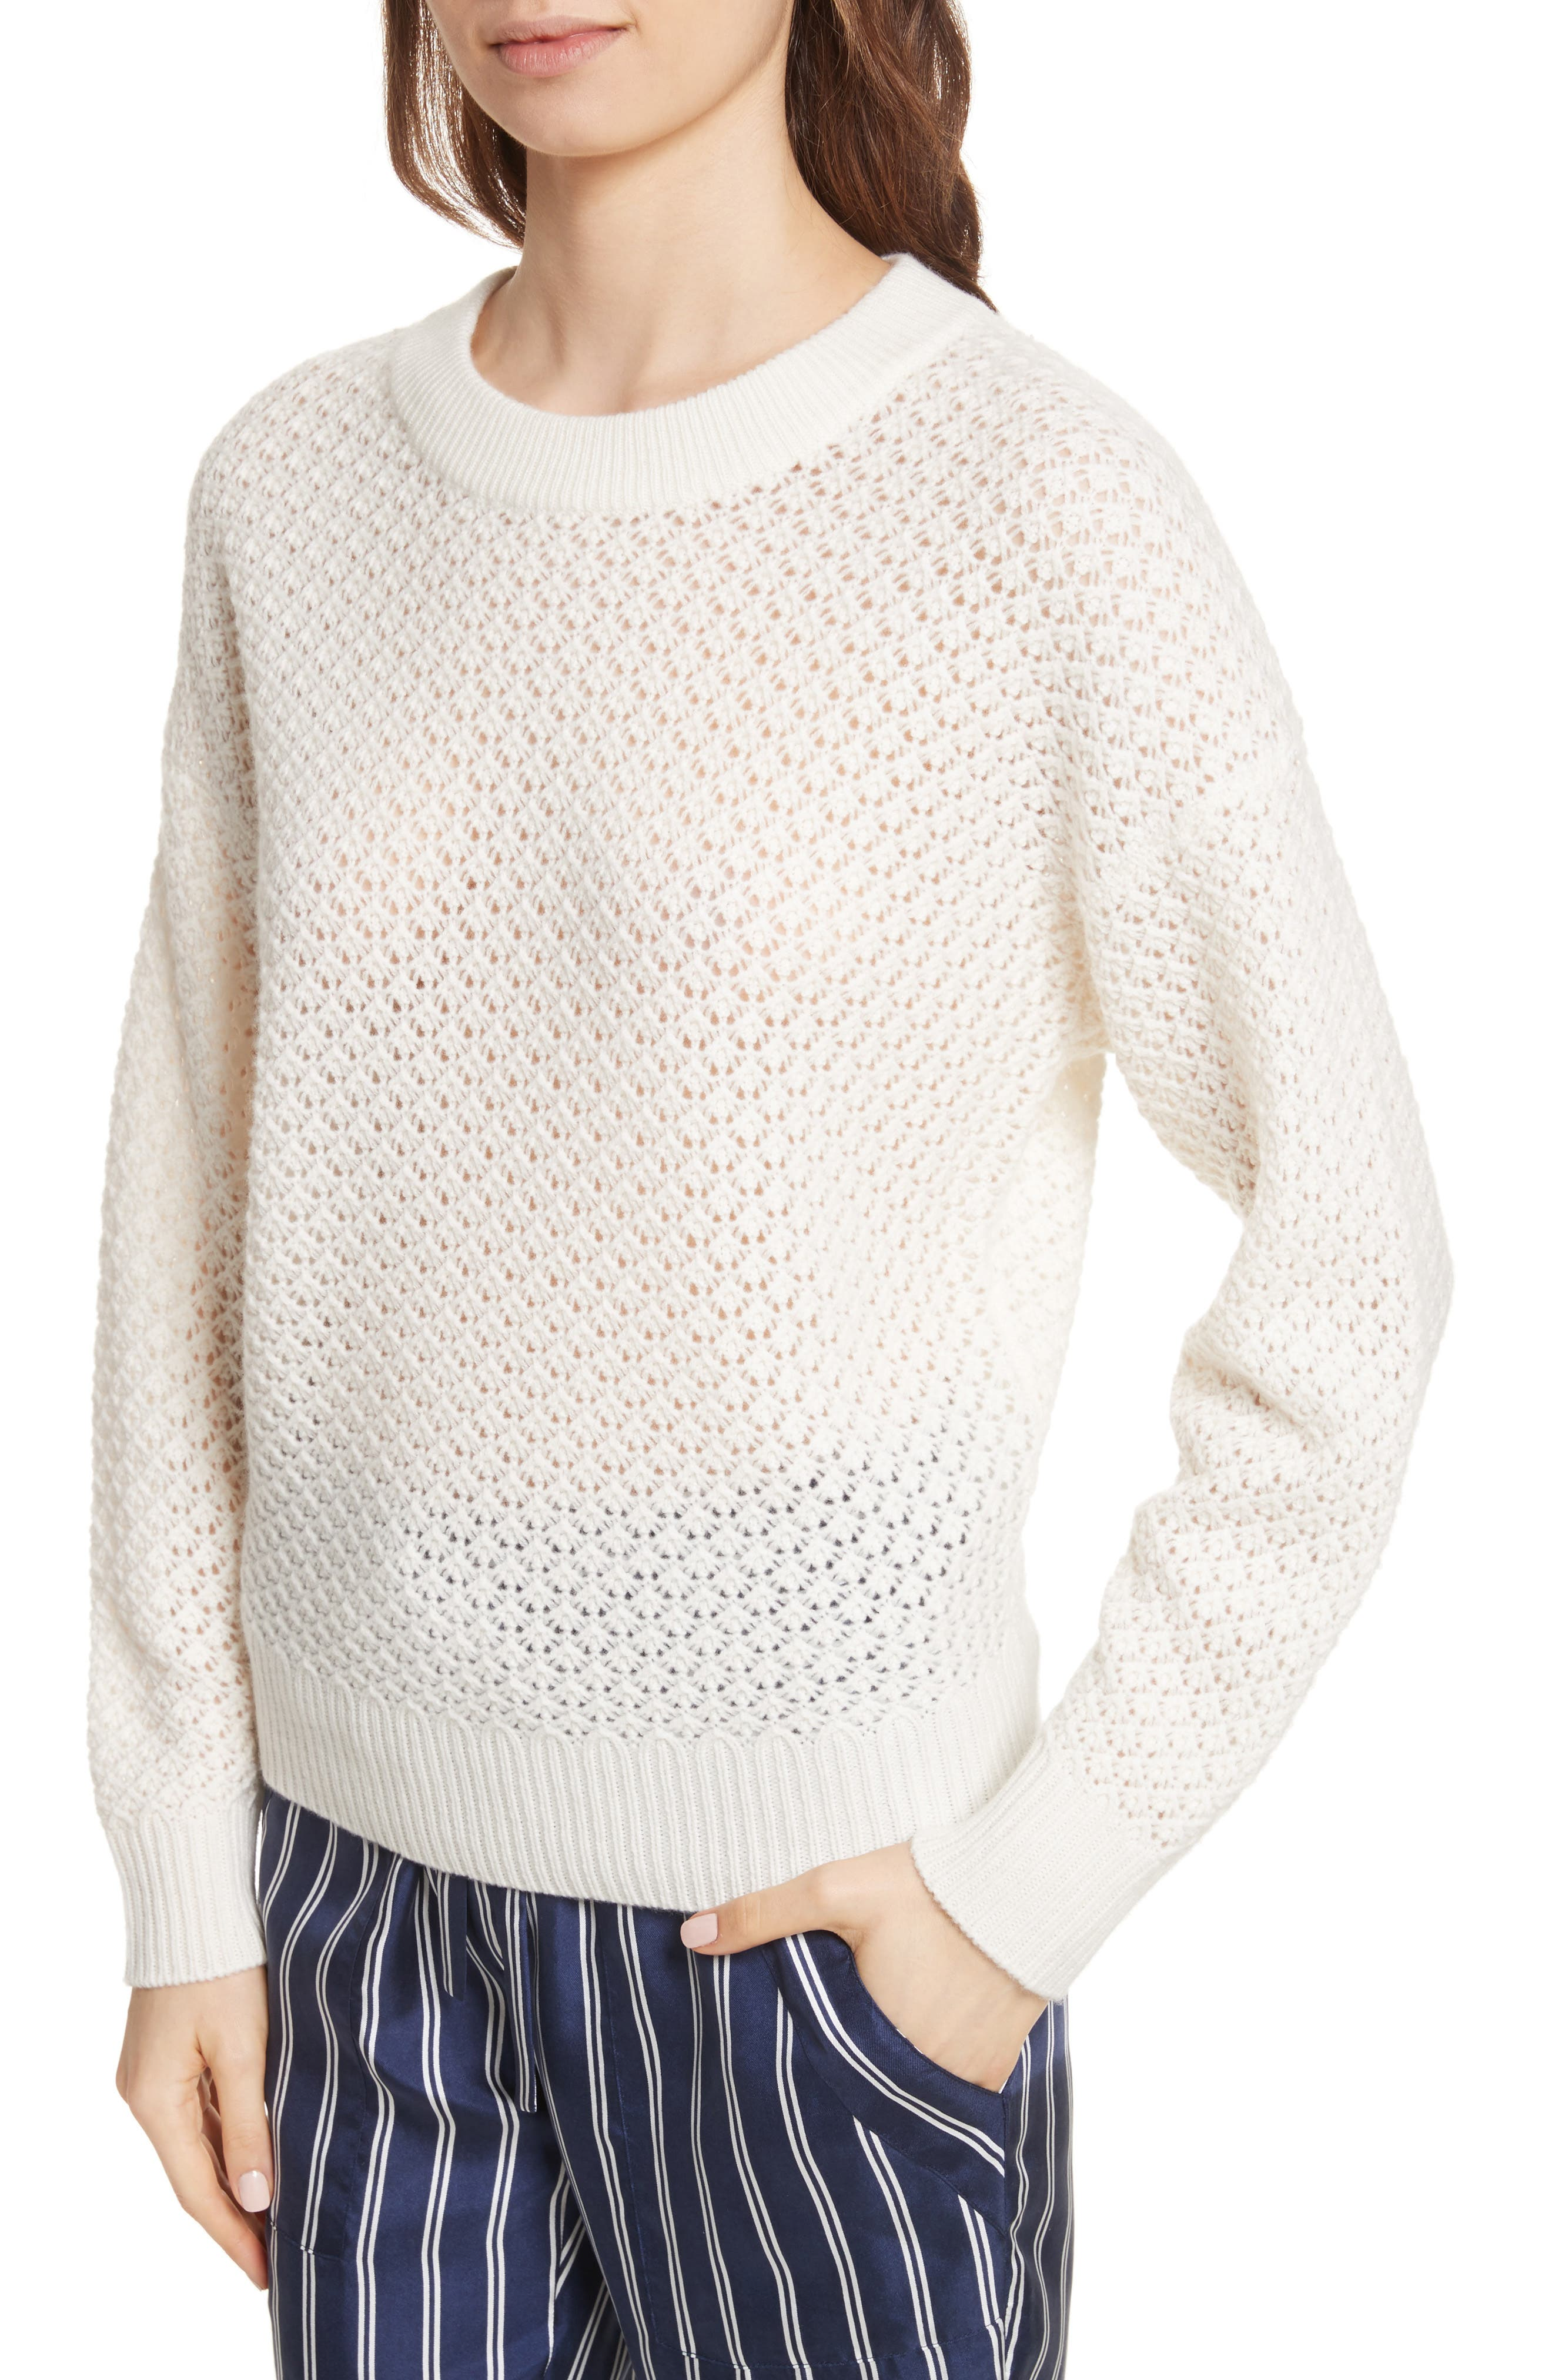 Vedis Wool & Cashmere Sweater,                             Alternate thumbnail 4, color,